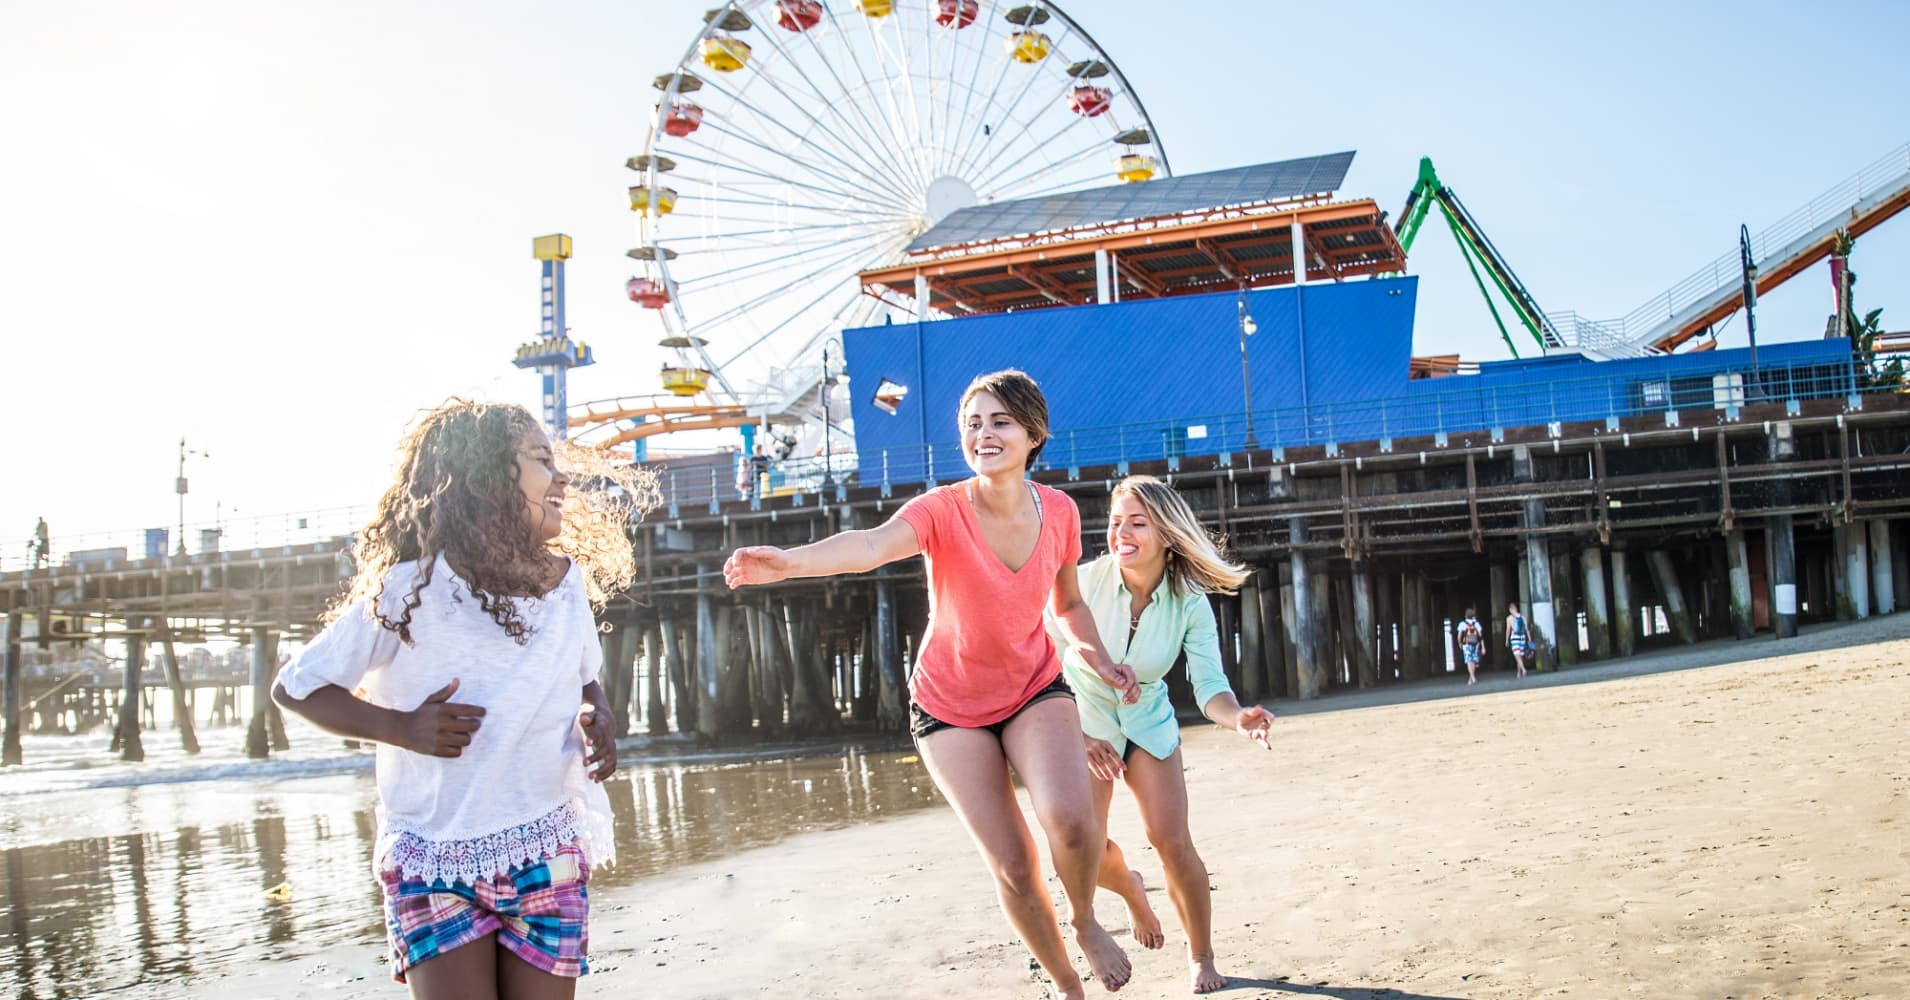 Two mothers and their daughter play by the Santa Monica Pier in California.